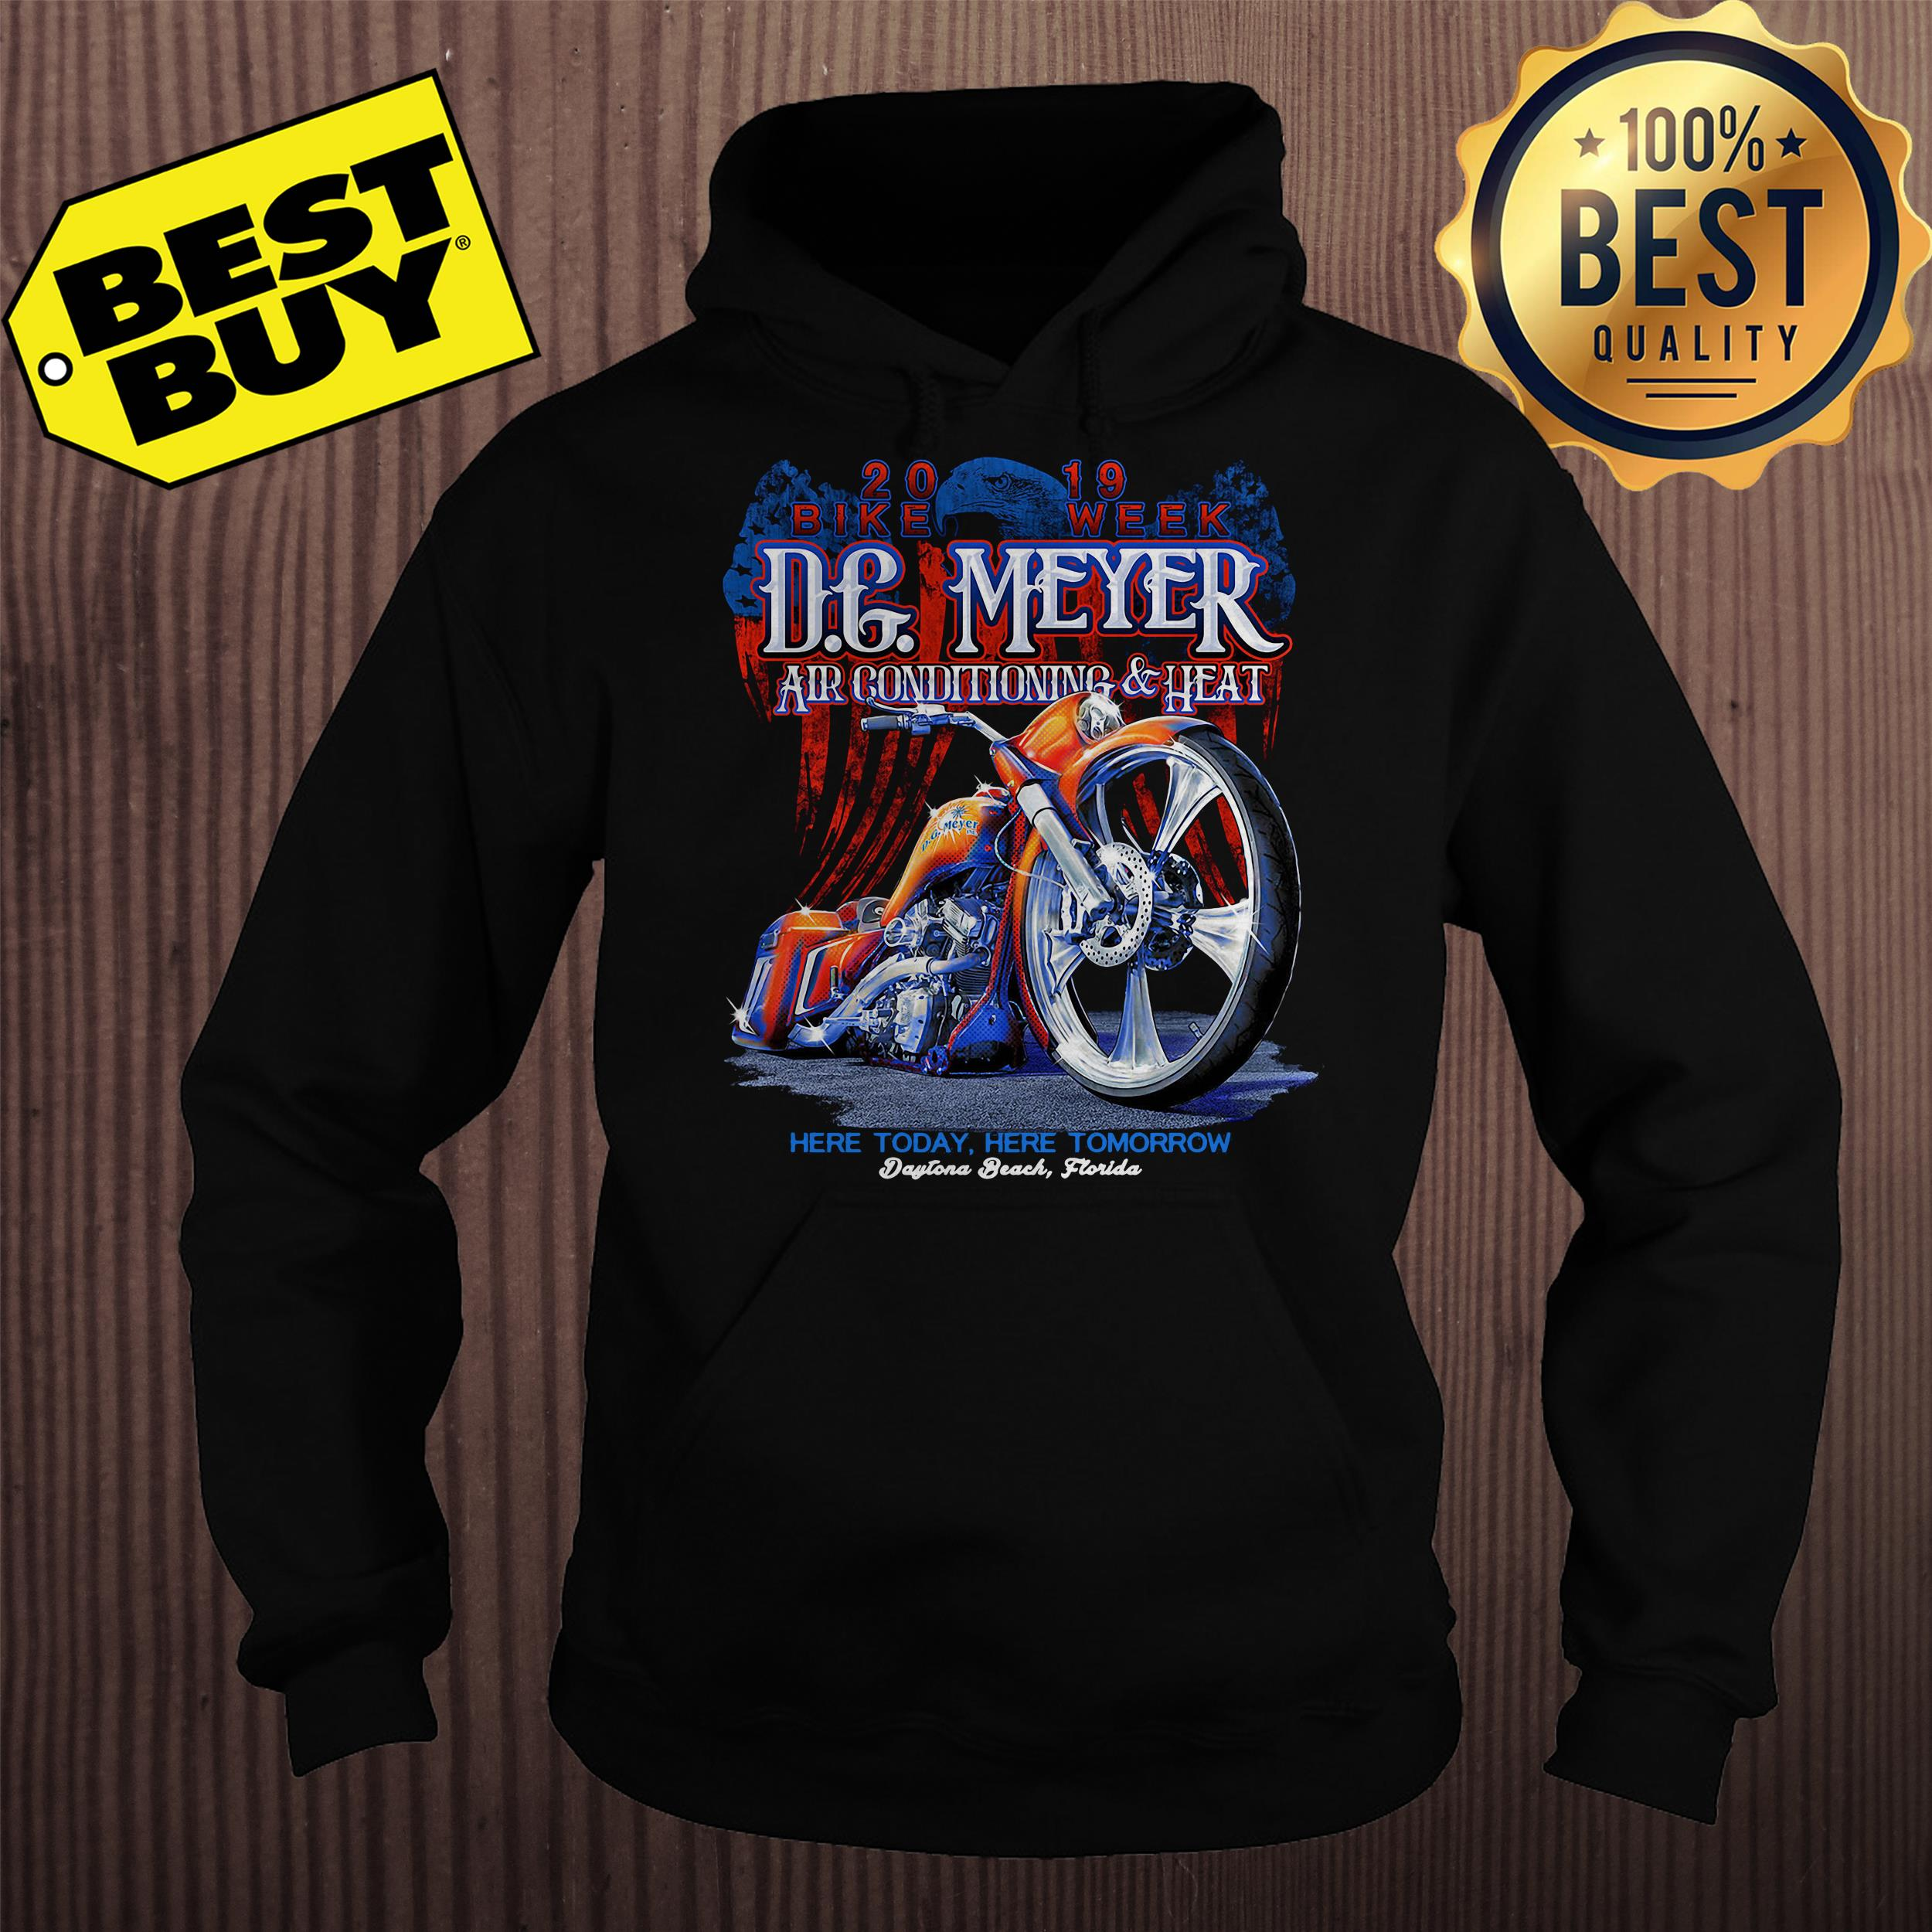 DG Meyer Air conditioning heat here today here tomorrow hoodie